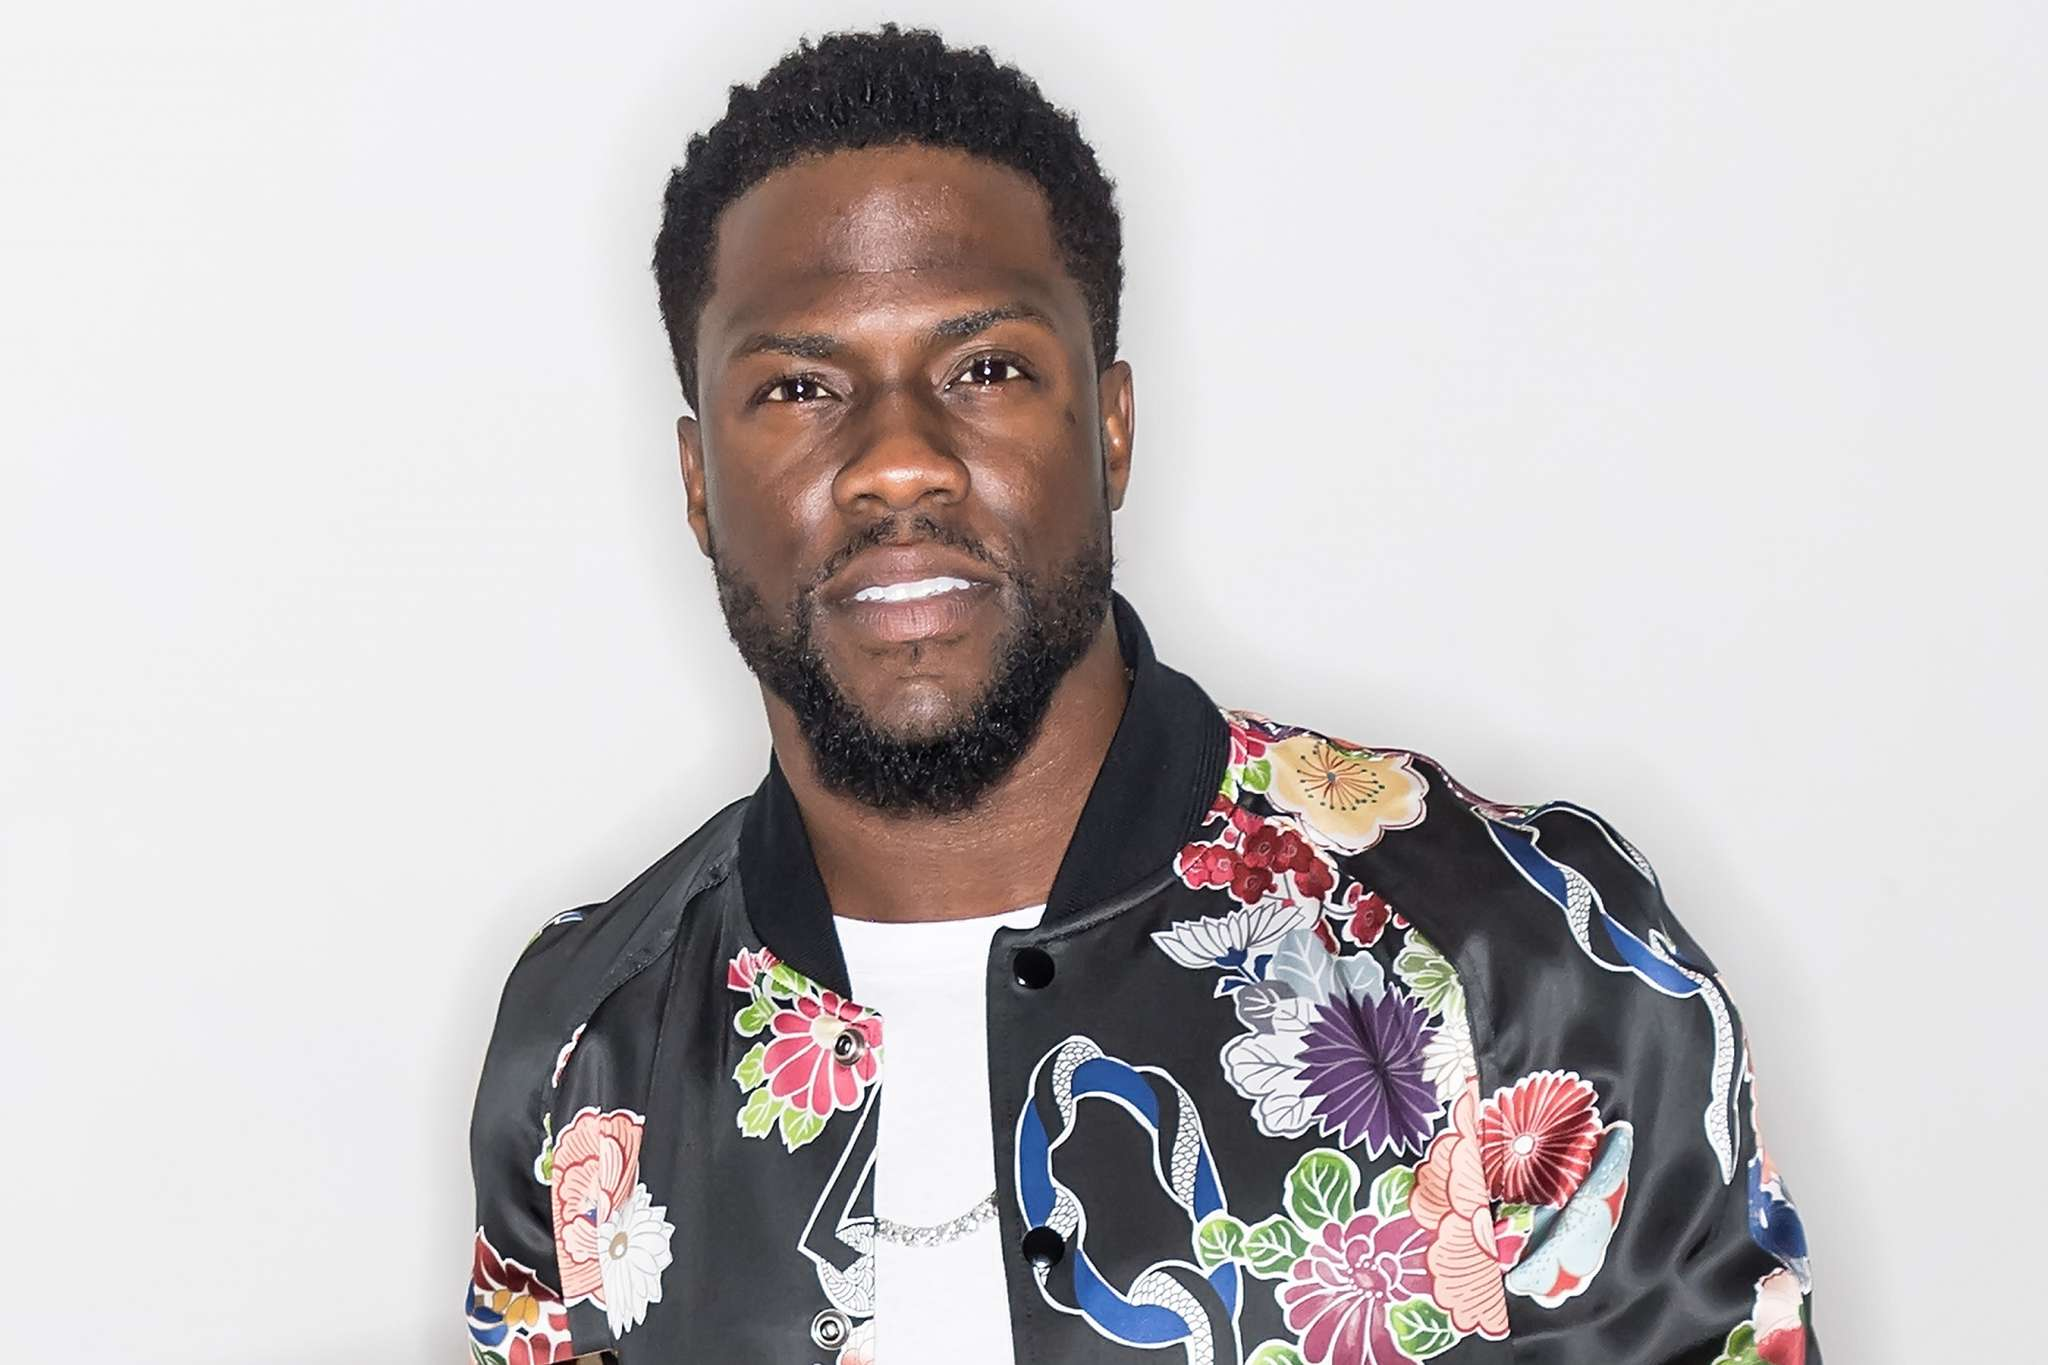 Kevin Hart Speaks On Offensive Tweets And Jokes About Cheating